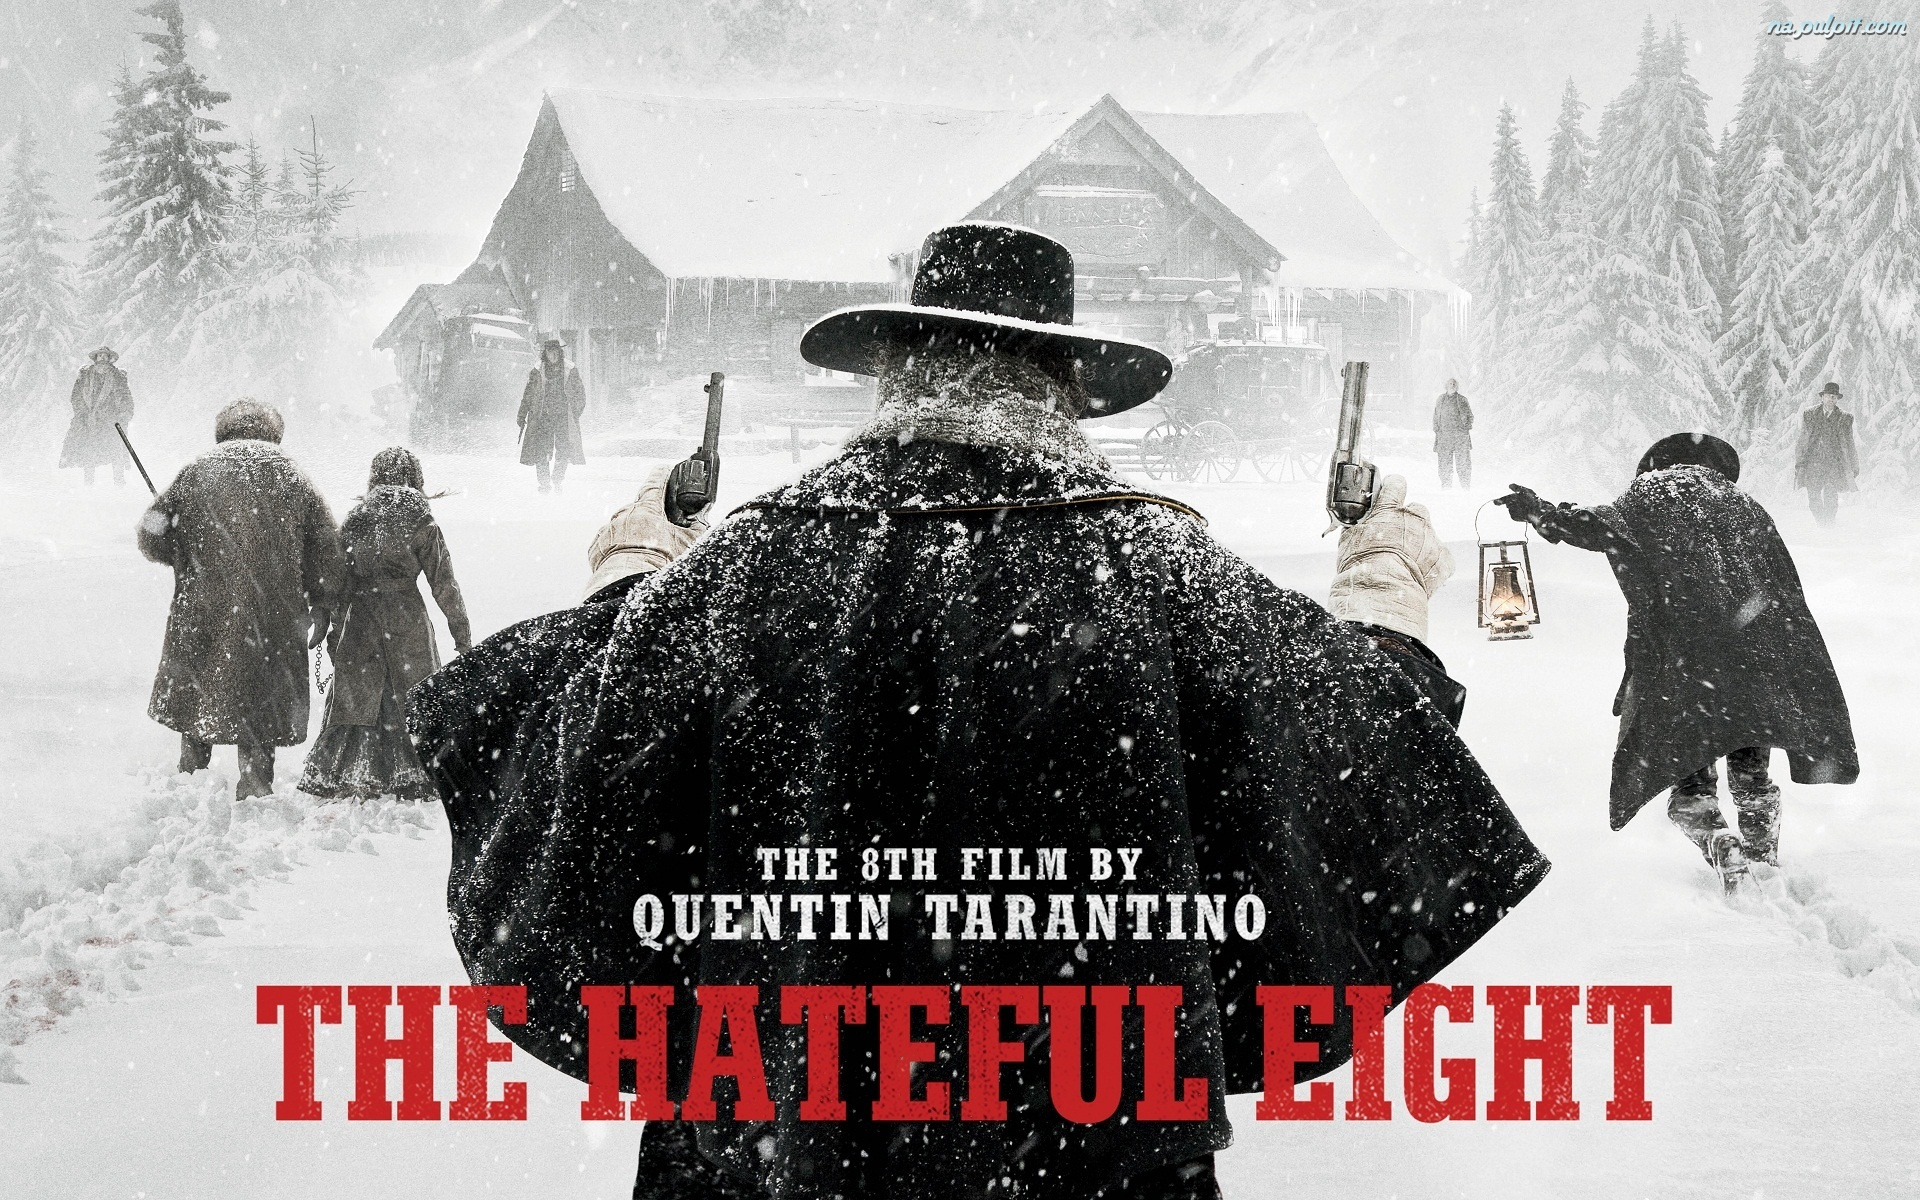 Śnieg, Nienawistna Ósemka, The Hateful Eight, Rewolwer